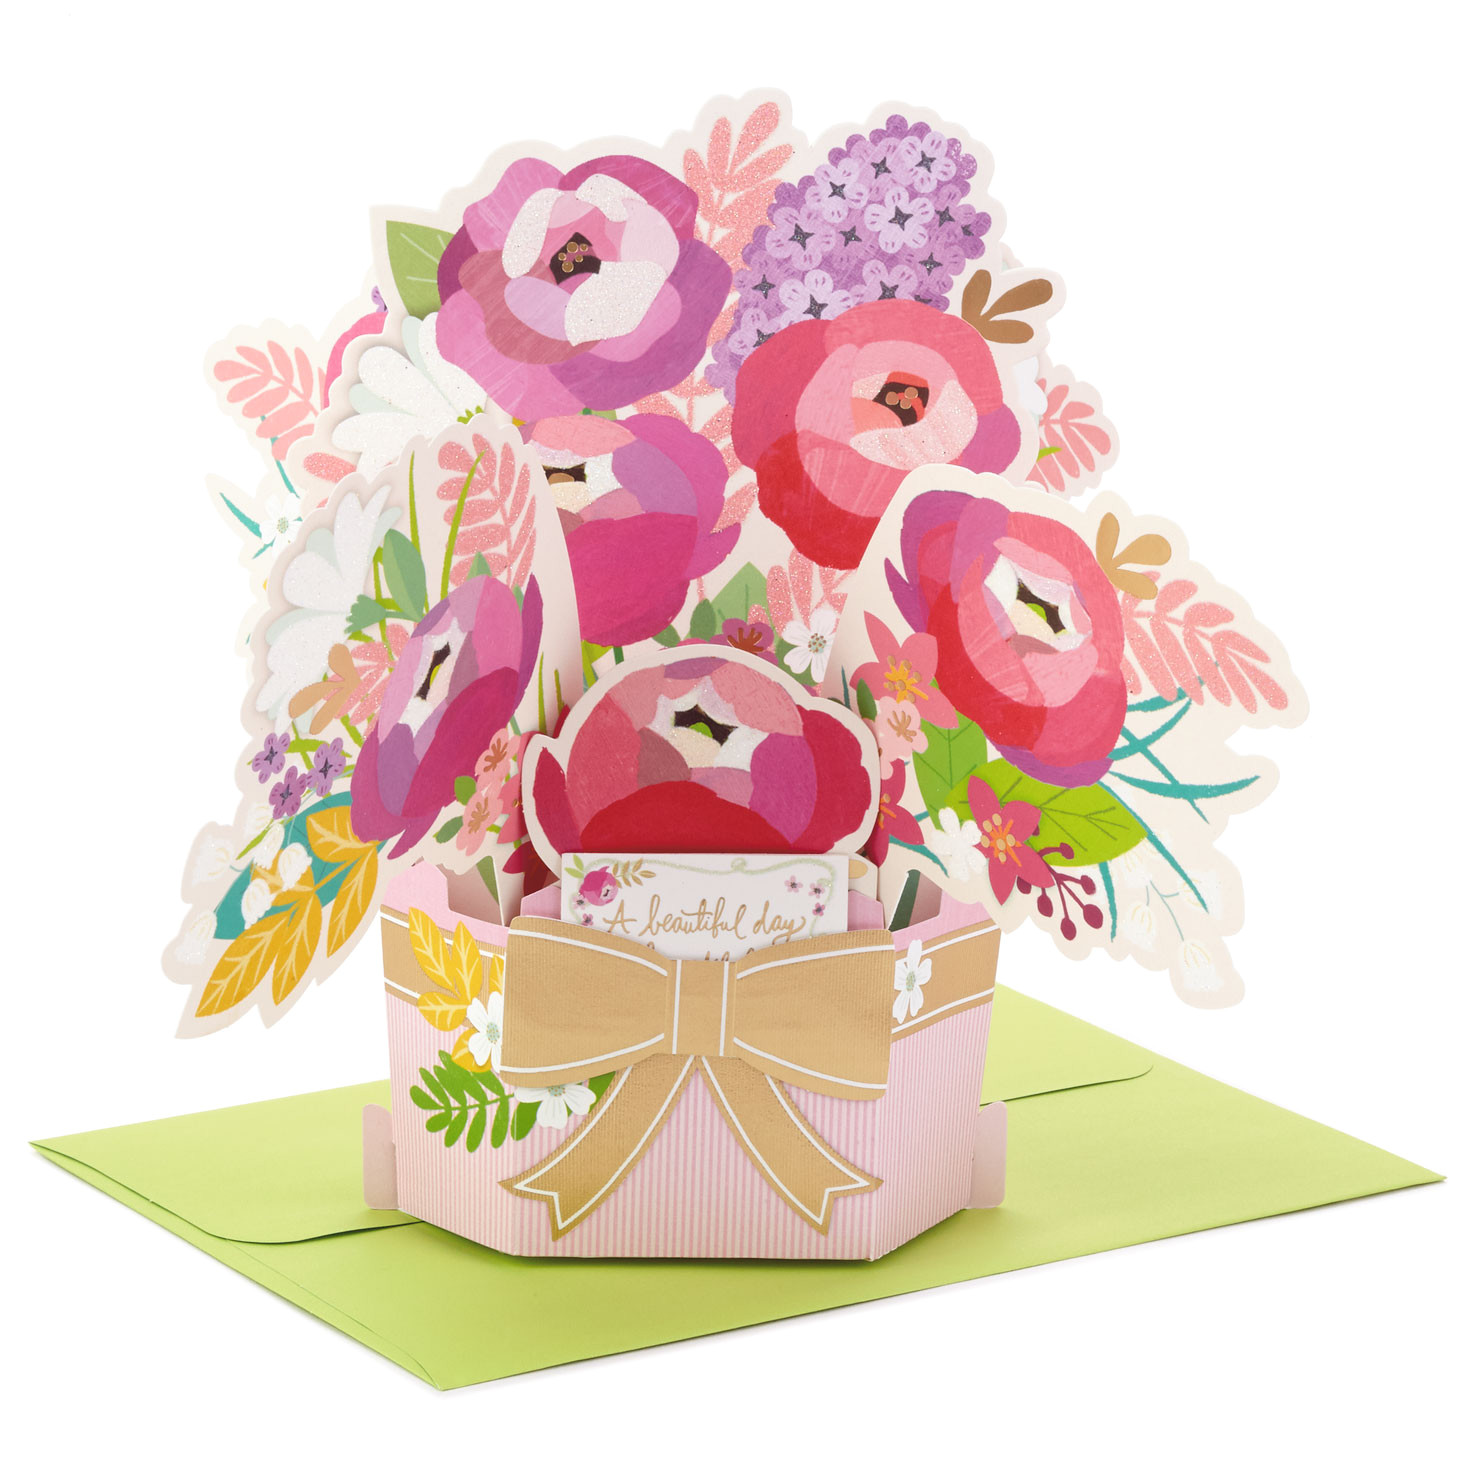 beautiful day flower bouquet 3d pop up birthday card 799WDR1080